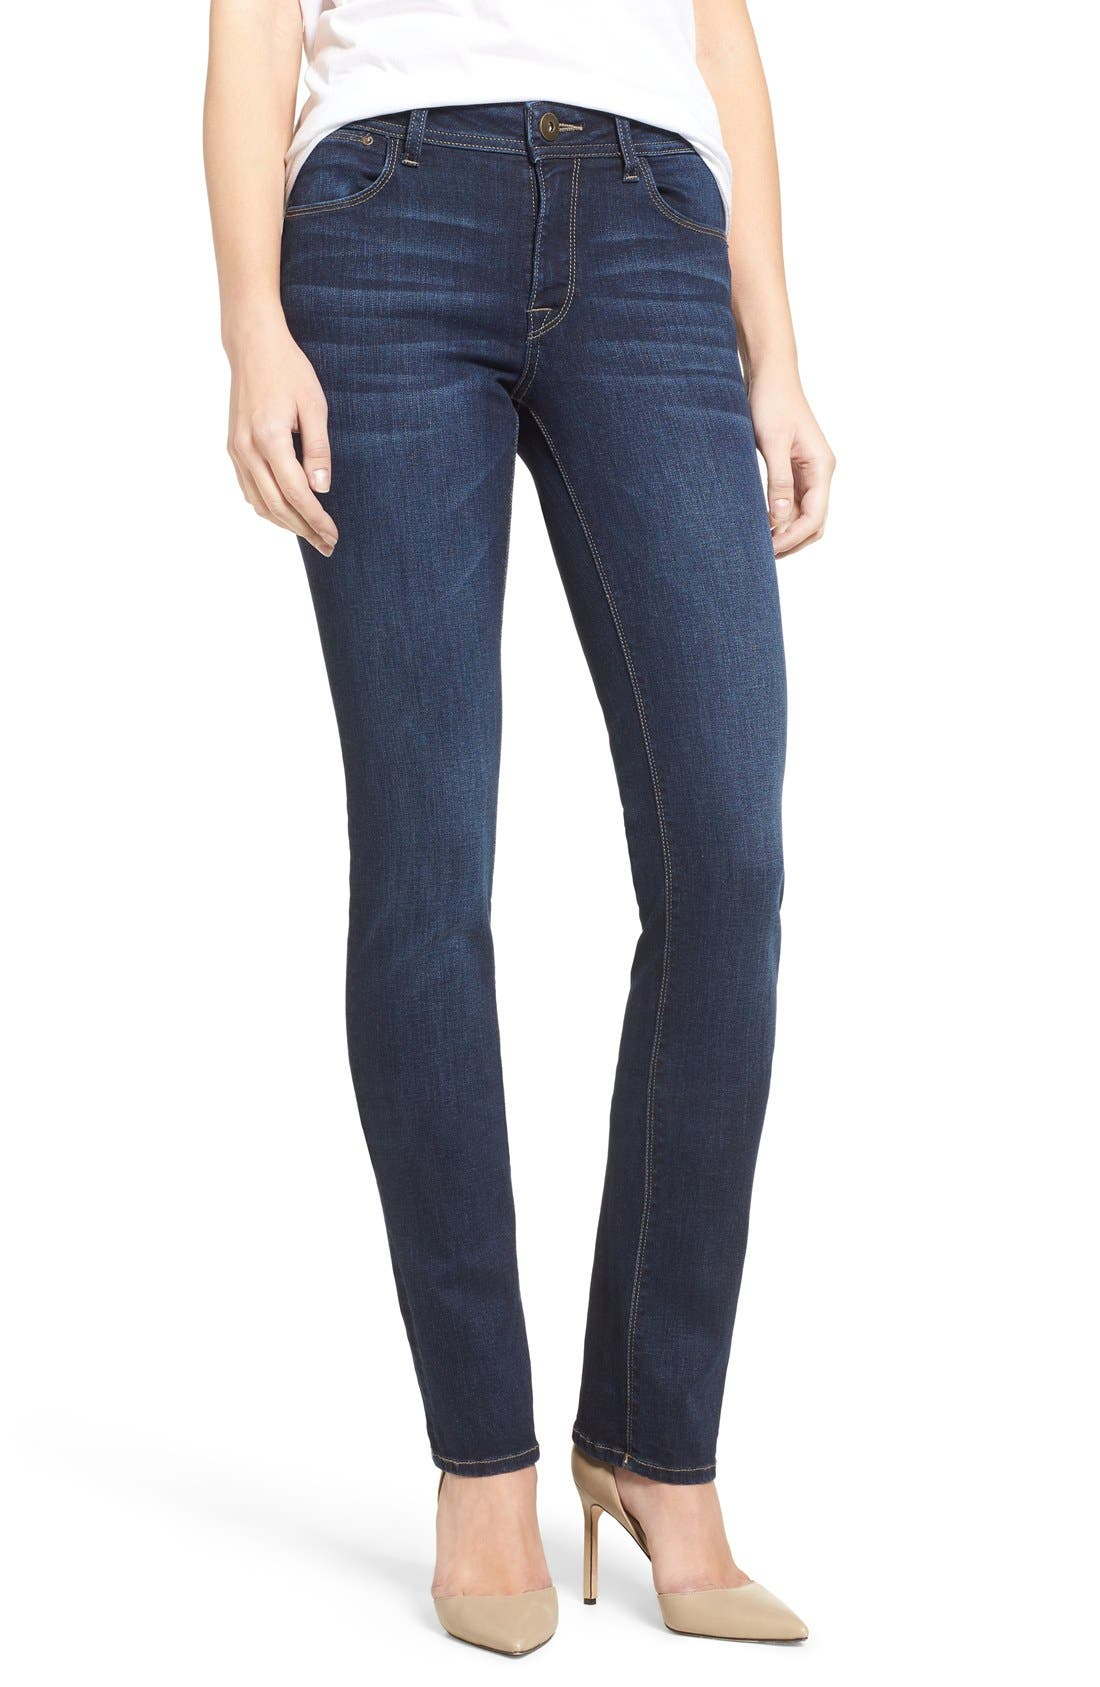 'Coco' Curvy Slim Straight Leg Jeans,                             Main thumbnail 1, color,